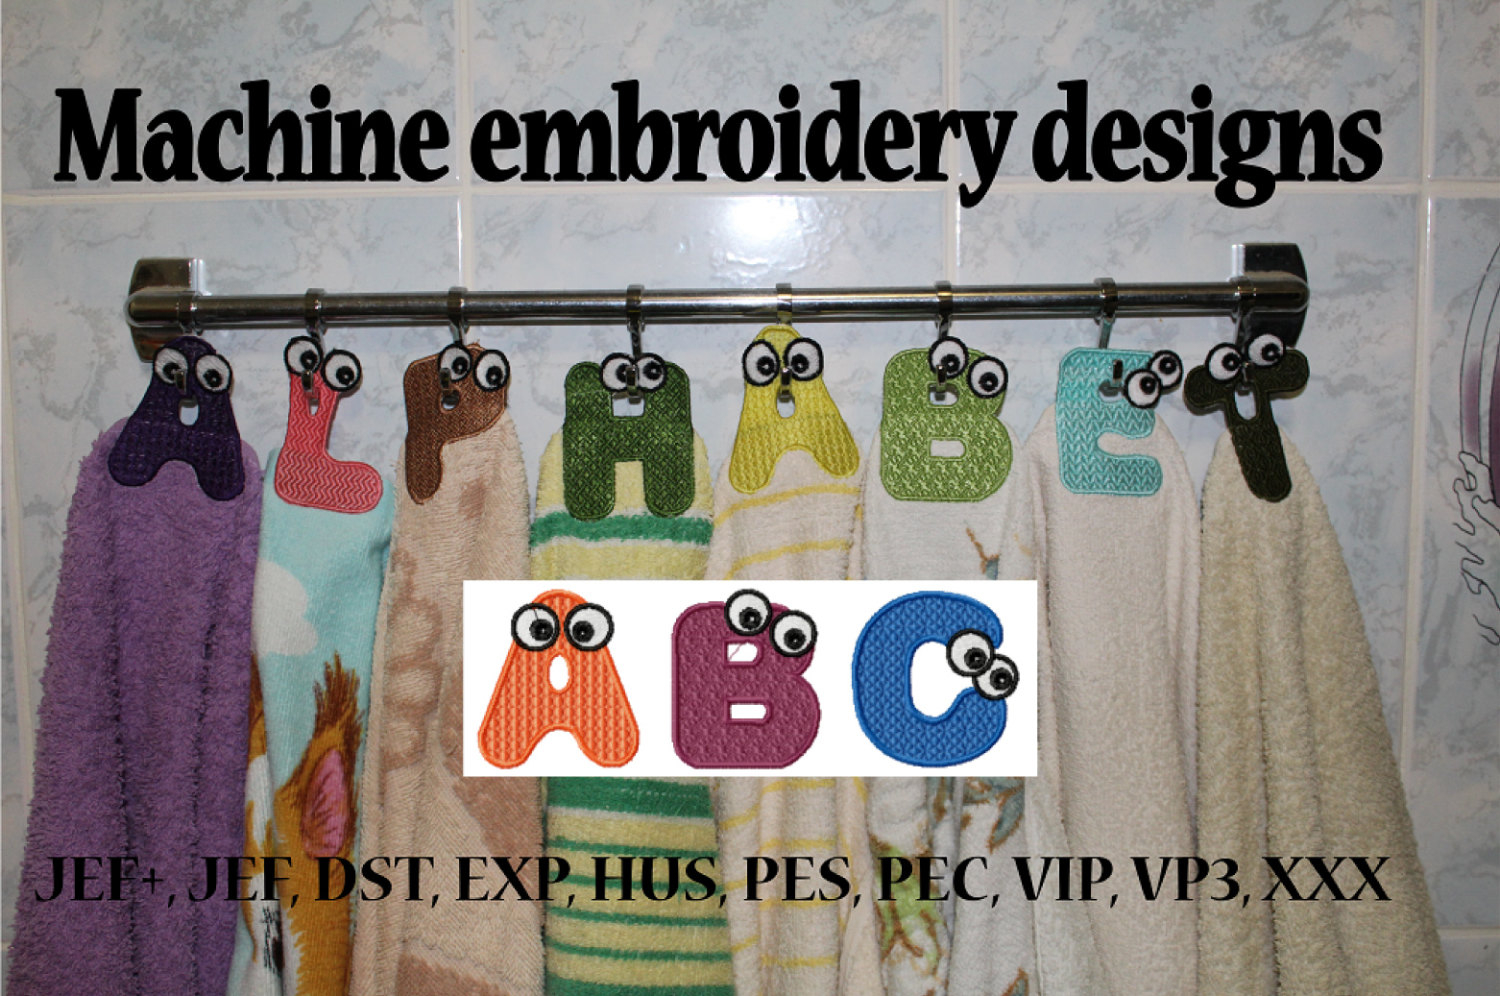 Kitchen Towel Embroidery Patterns For Kitchen Towels Embroidery Designs Fsl Monogram Fonts Embroidery Kitchen Embroidery Alphabet Towel Topper Letter Home Pattern Towel